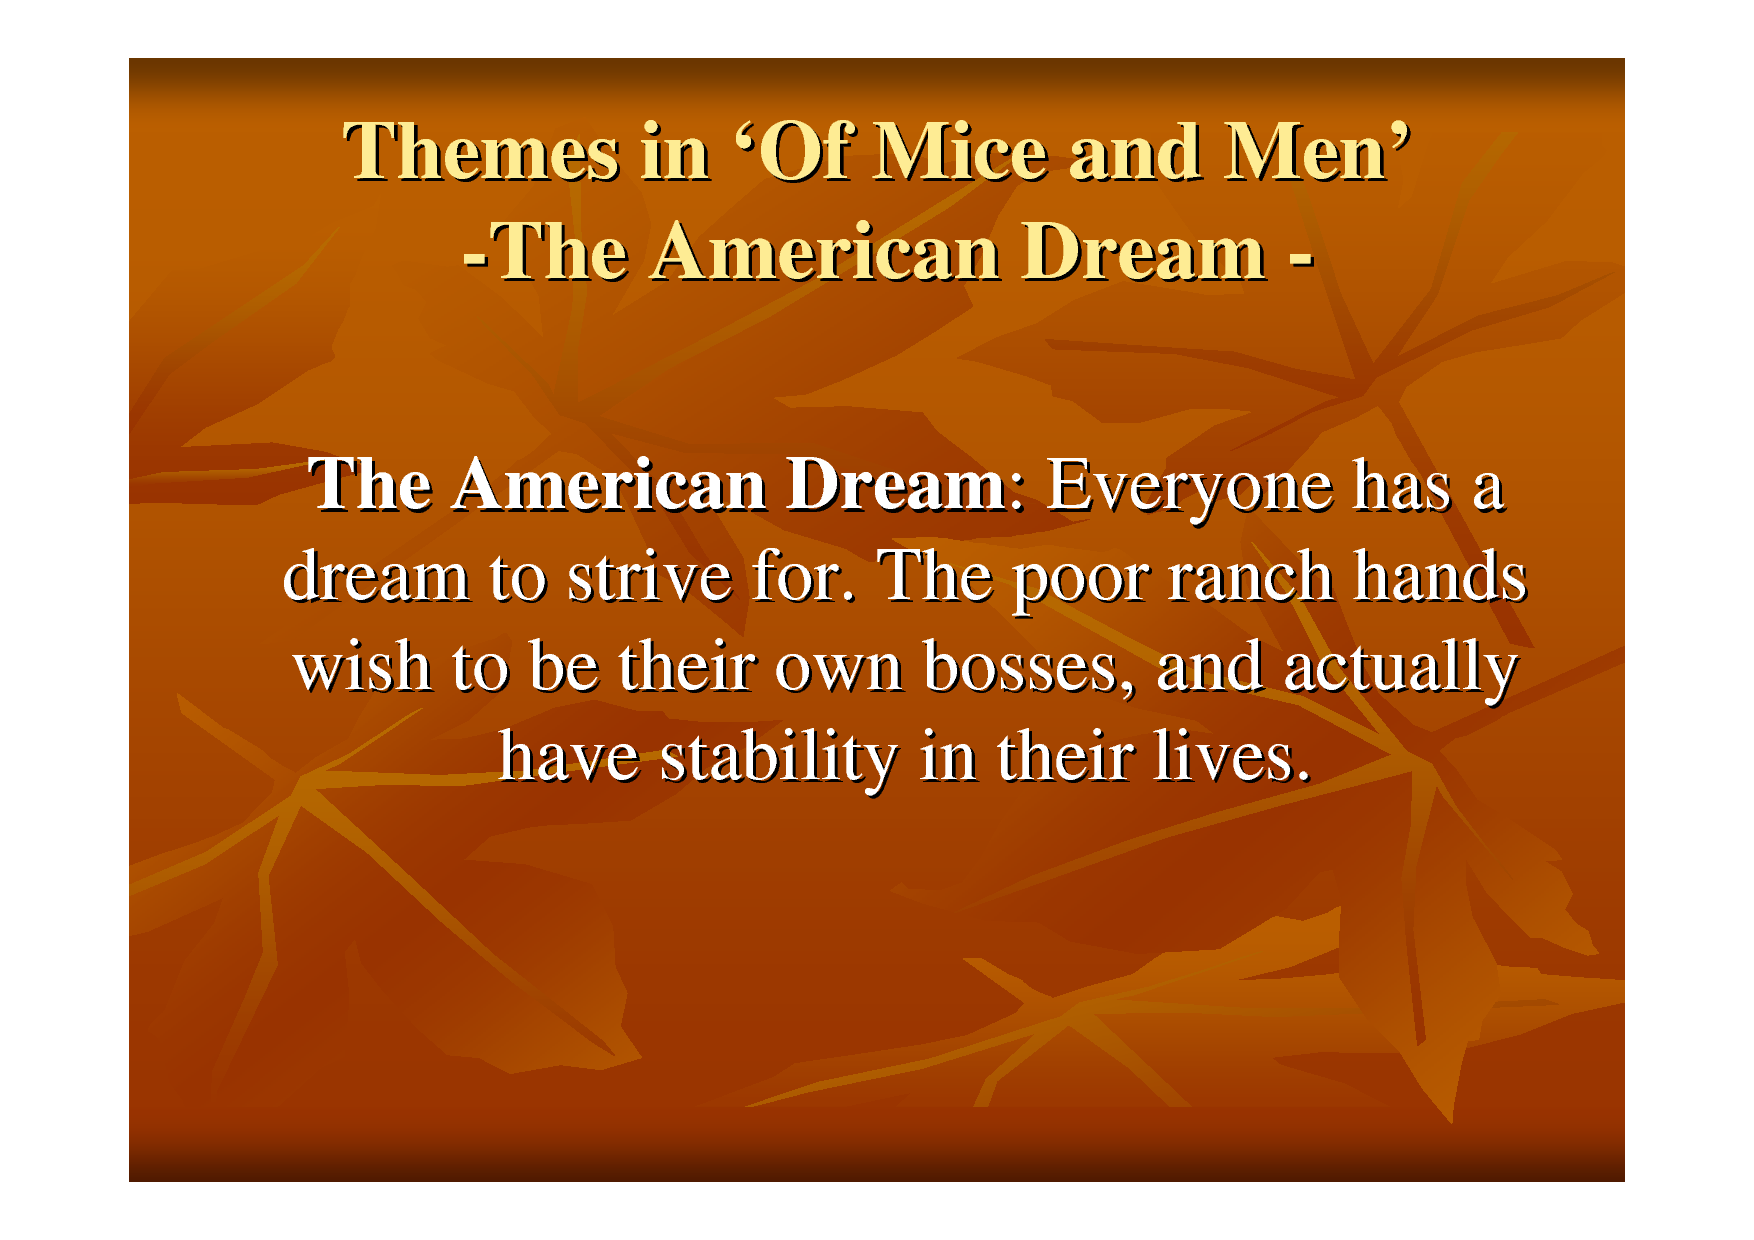 of mice and men and the american dream essays We will write a custom essay sample on of mice and men-the american dream or any similar topic specifically for you hire writer.